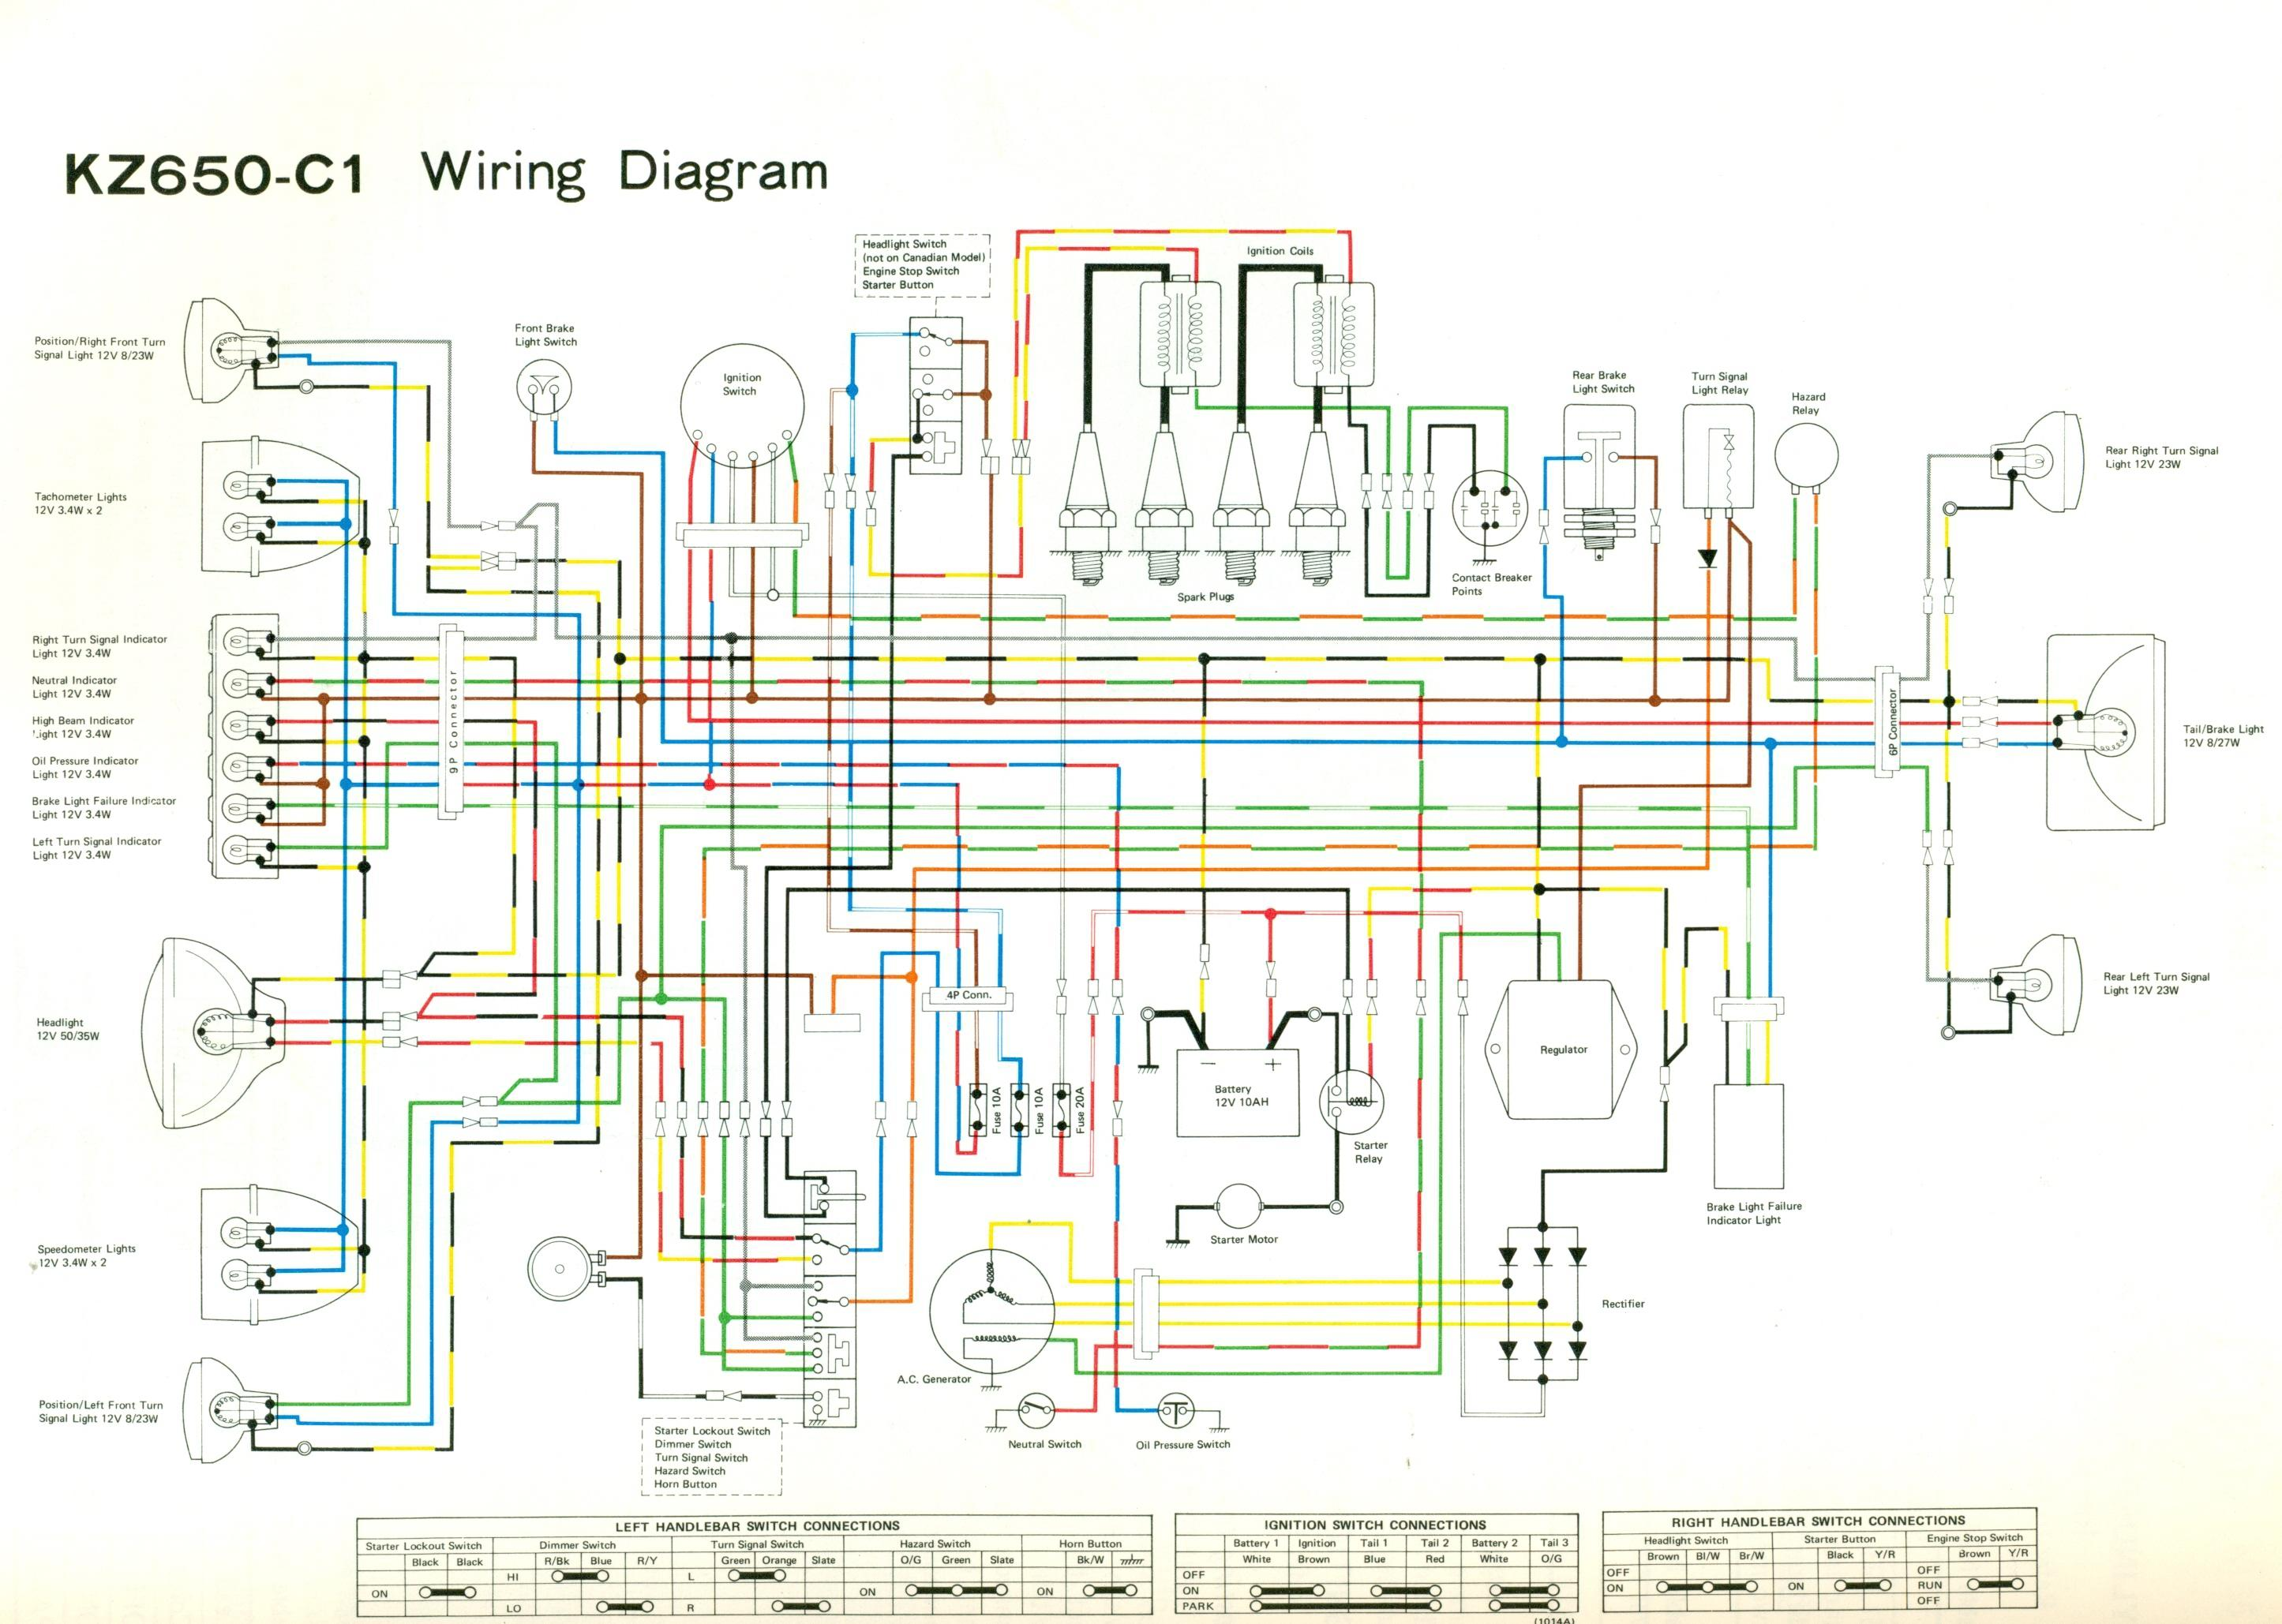 wiring diagrams kz650 c jpg